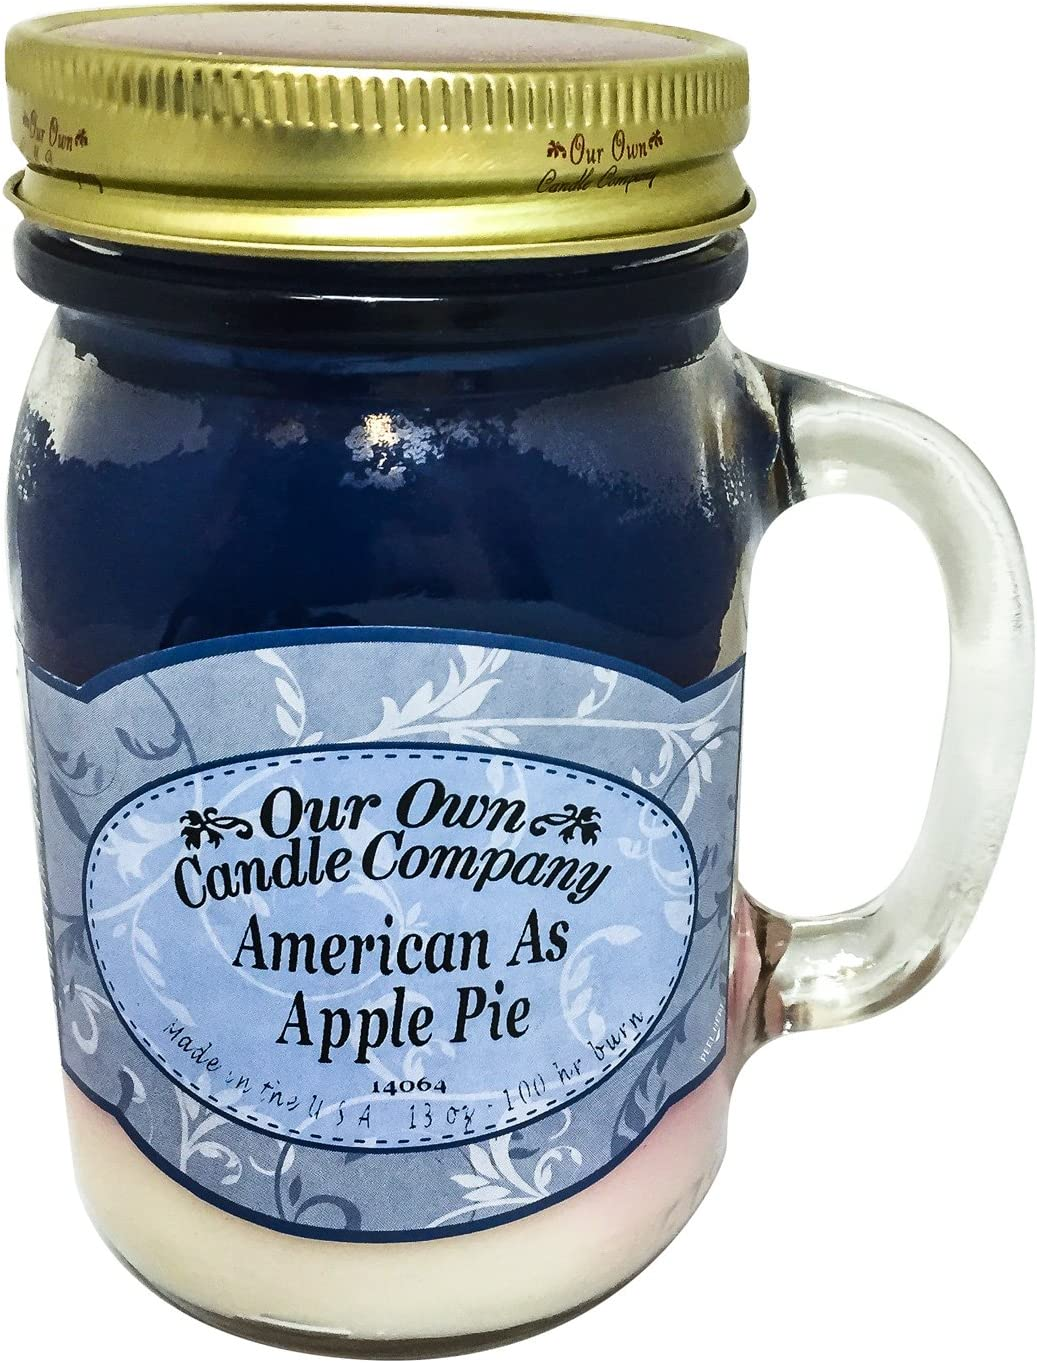 Our Own Candle Company American As Apple Pie Scented 13 Ounce Mason Jar Candle